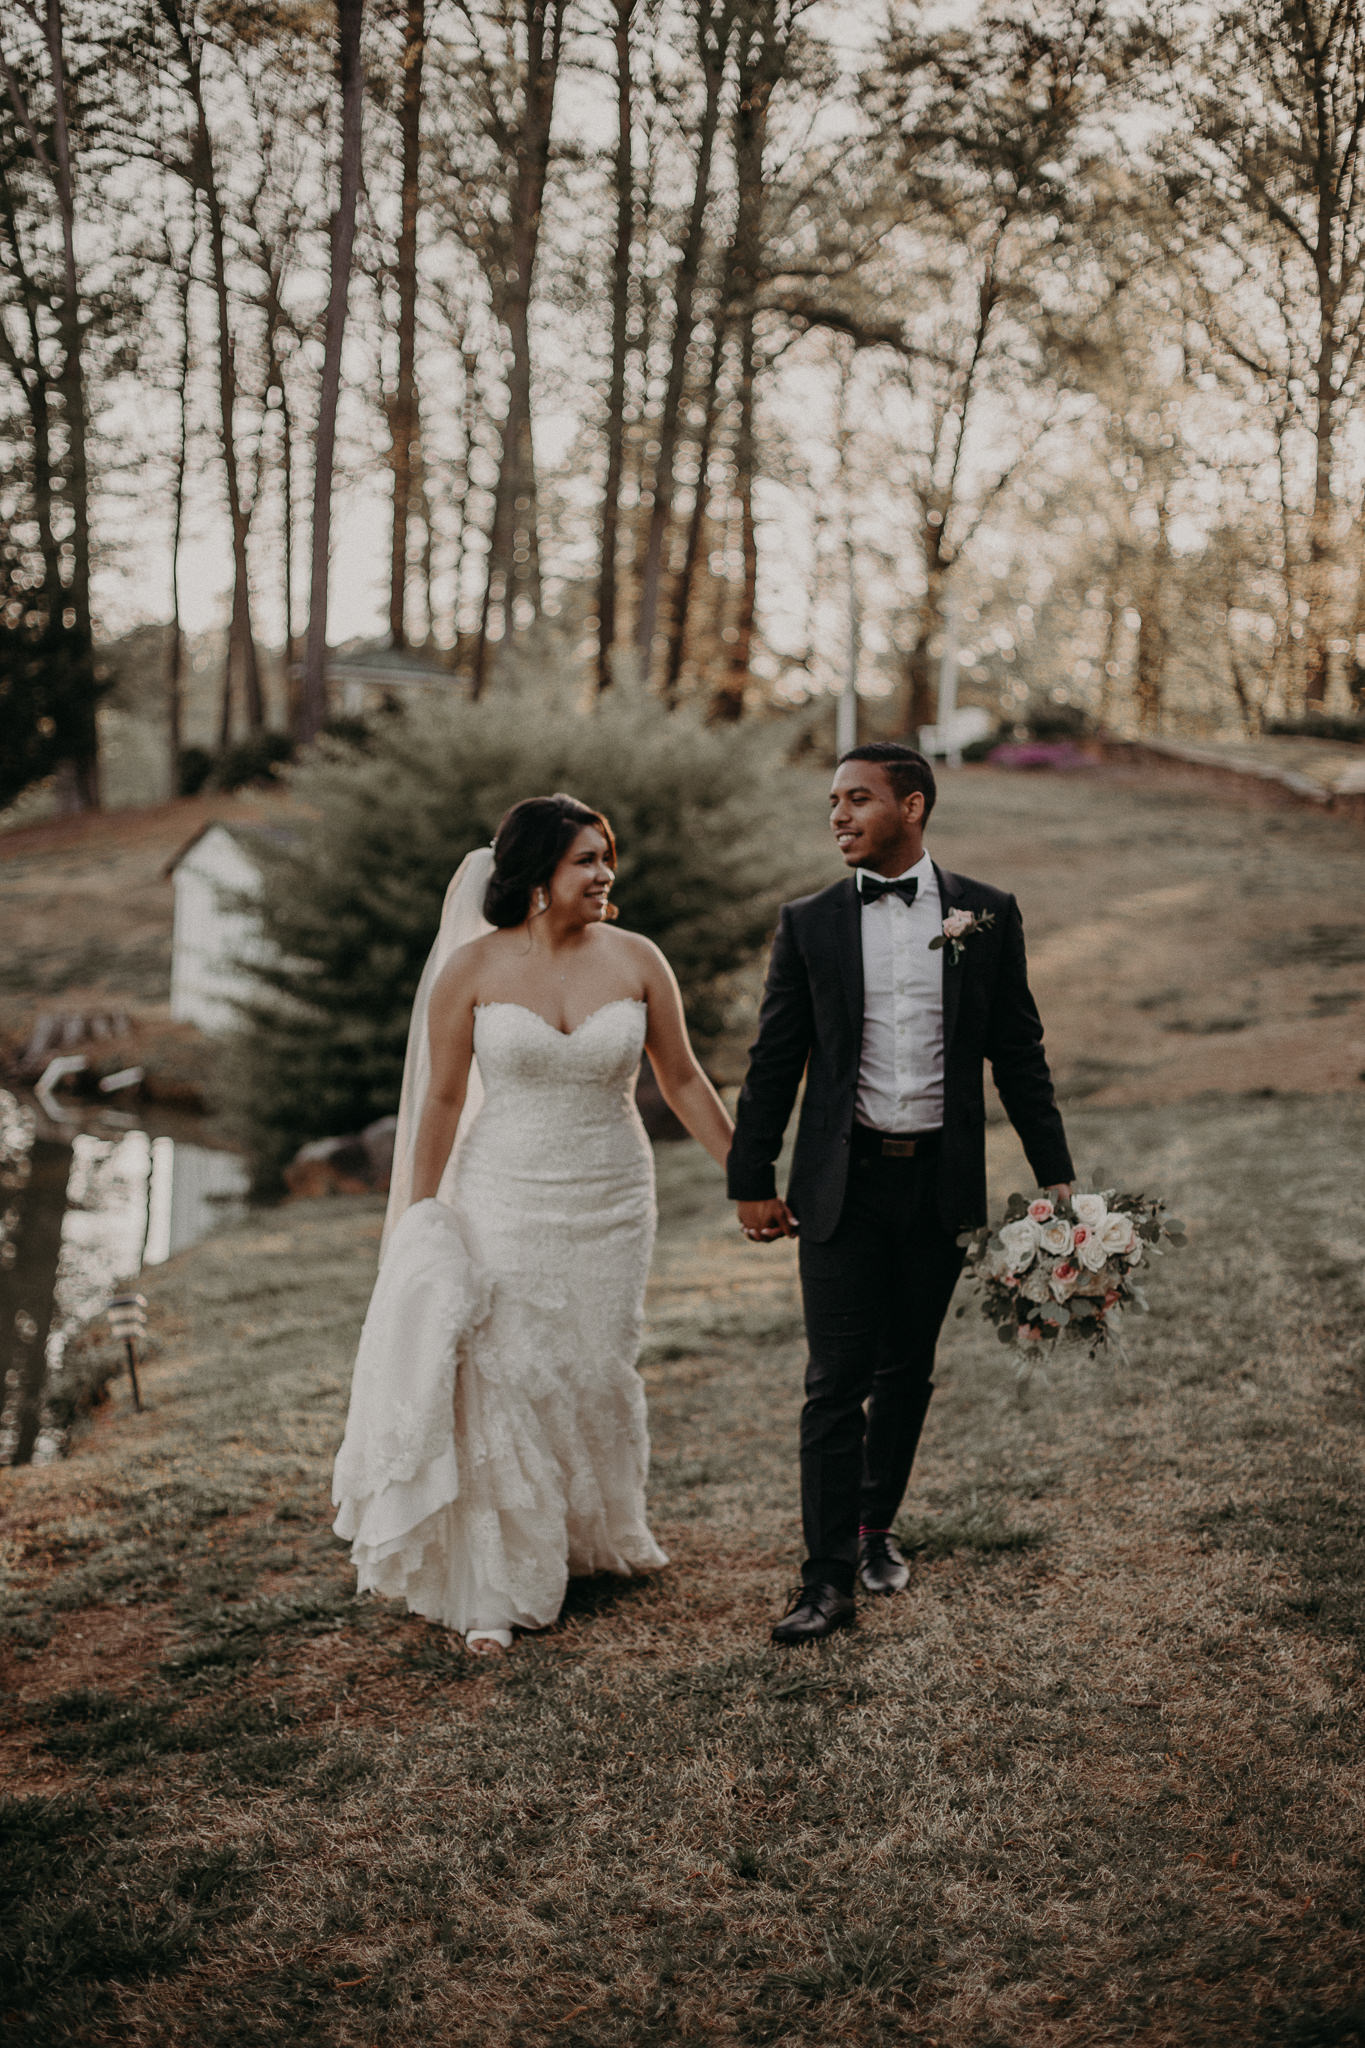 53  - Little River Farms - first look - Atlanta - Wedding Venue - Atlanta Wedding Photographer - Georgia weddings details wedding dress shoes gather groom bridal party_.JPG